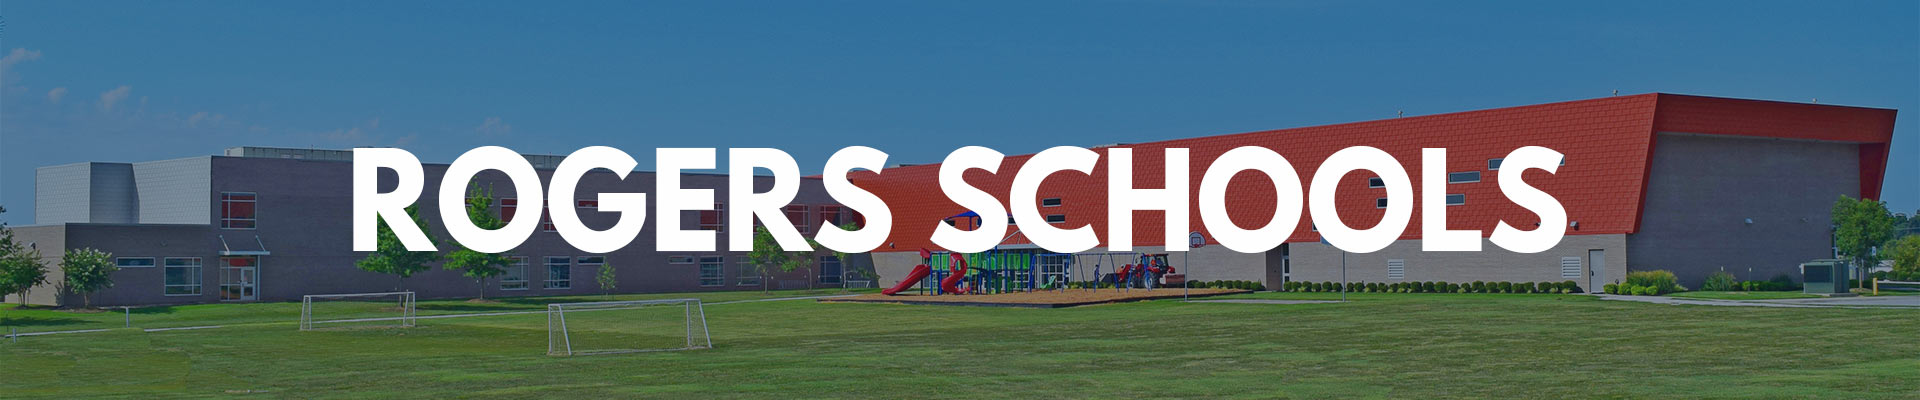 Search Neighborhoods in the Rogers School District ...